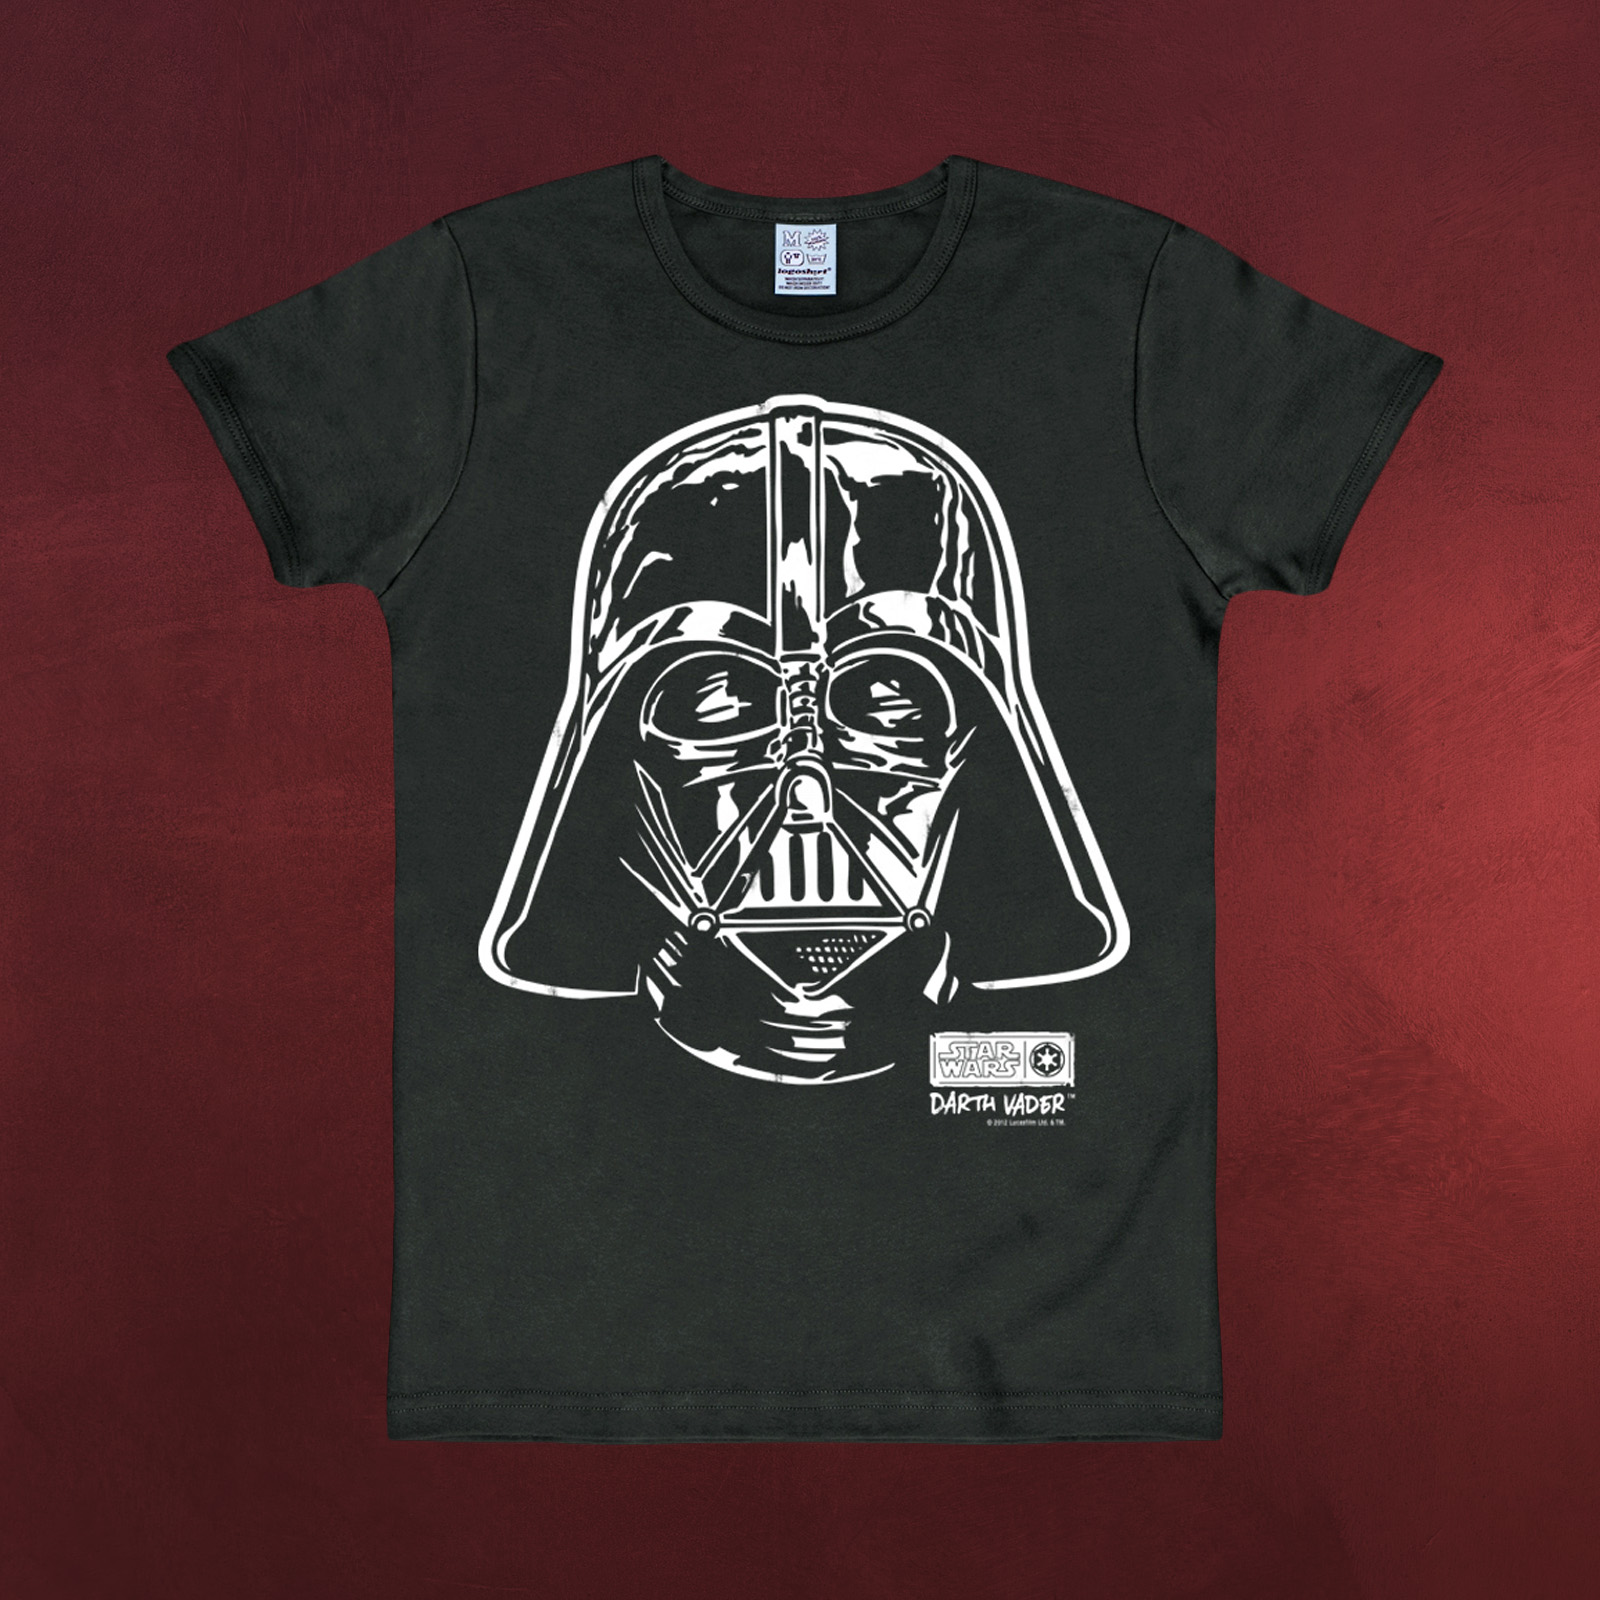 star wars darth vader t shirt damen herren hochwertig. Black Bedroom Furniture Sets. Home Design Ideas